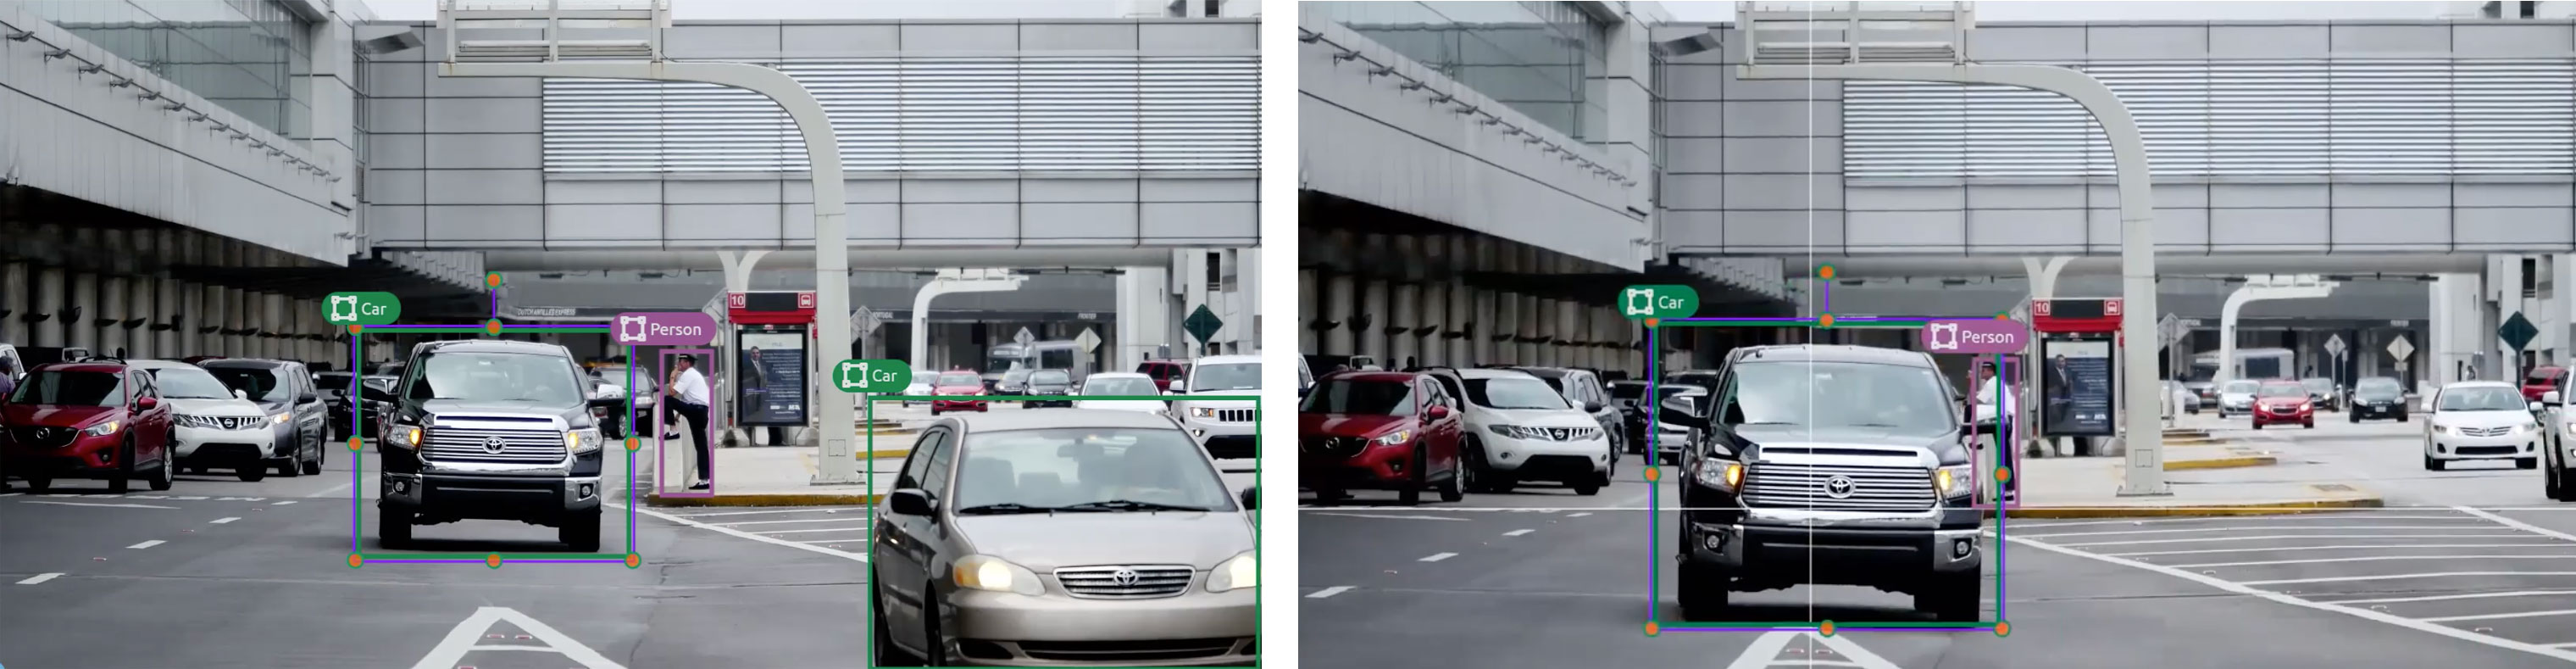 "This is an example of image annotation for computer vision using tracking. There are two images of the same street scene. The incremental movement of two of the vehicles indicates that the images were captured seconds apart, one after the other. Both images show a truck, annotated with a bounding box and a label marked ""truck."" The image on the right is the same scene as the first, except the truck is shown further to the right, indicating that the truck has moved from the position shown in the earlier image."